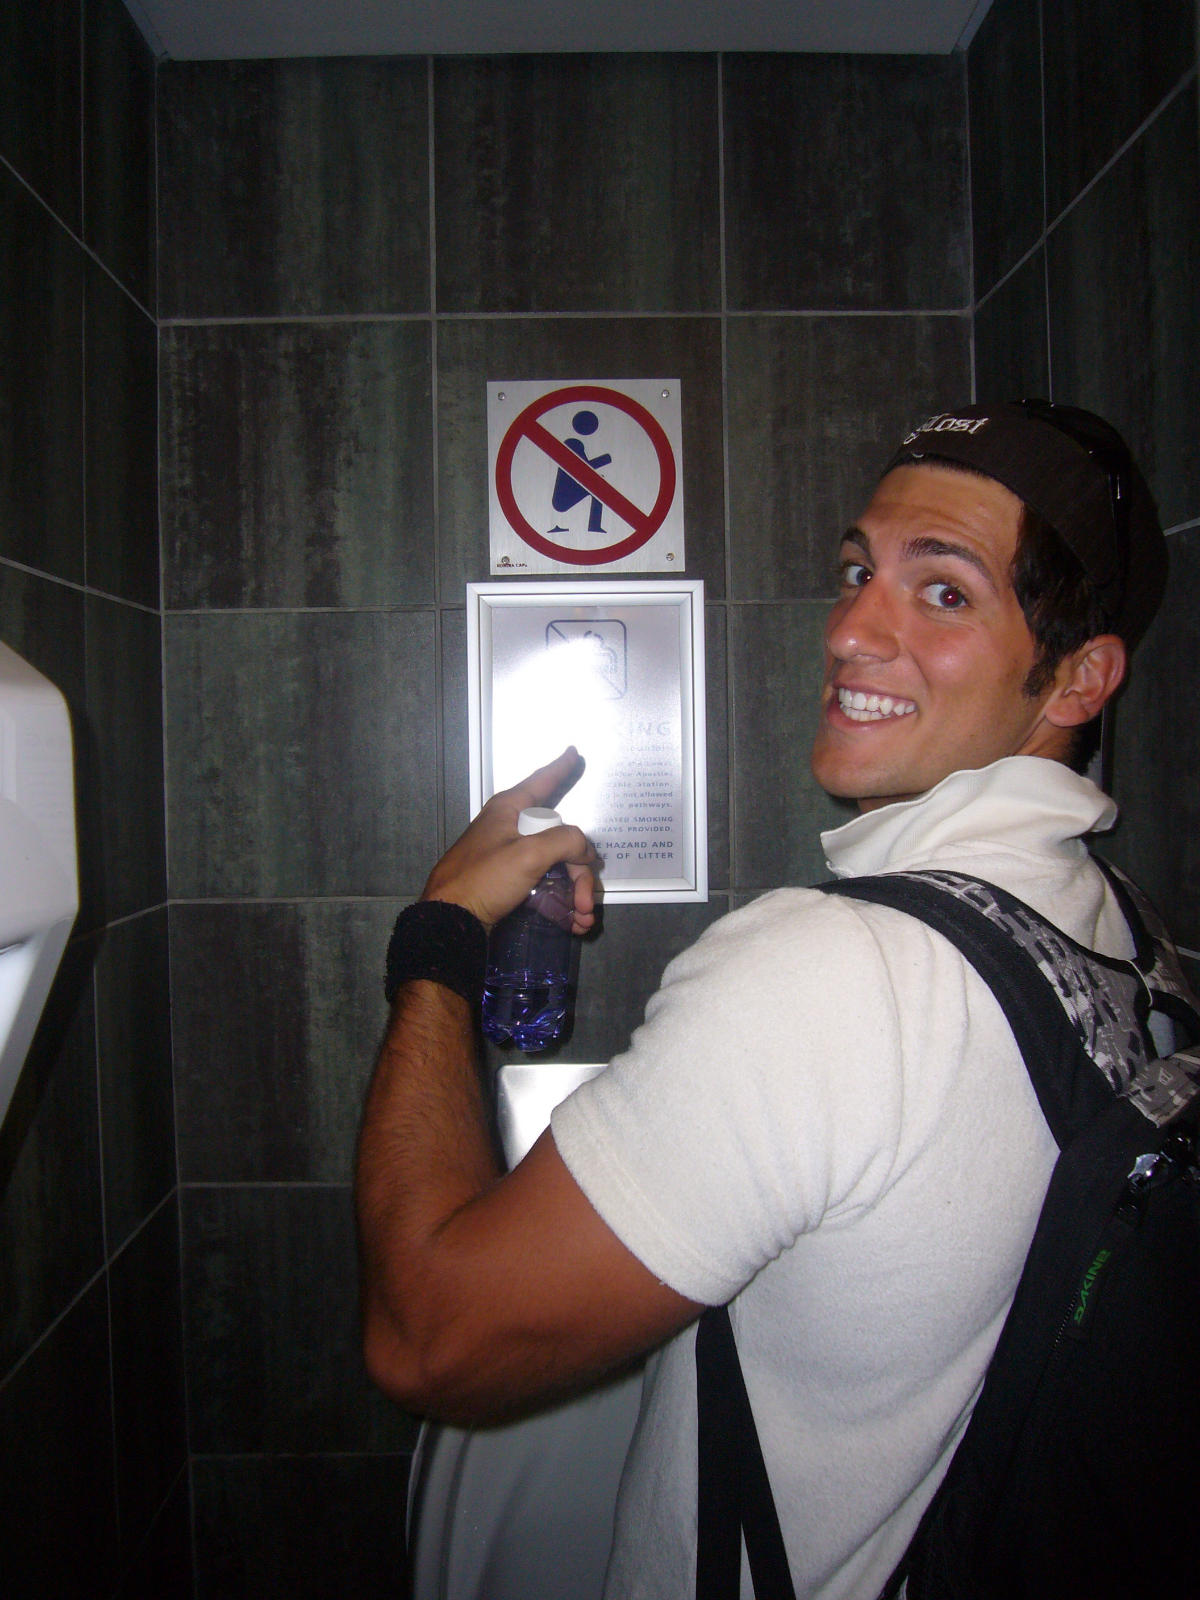 Kenny familiarizing himself with the proper way to use the toilet in S. Africa (Inferno 3 2007)